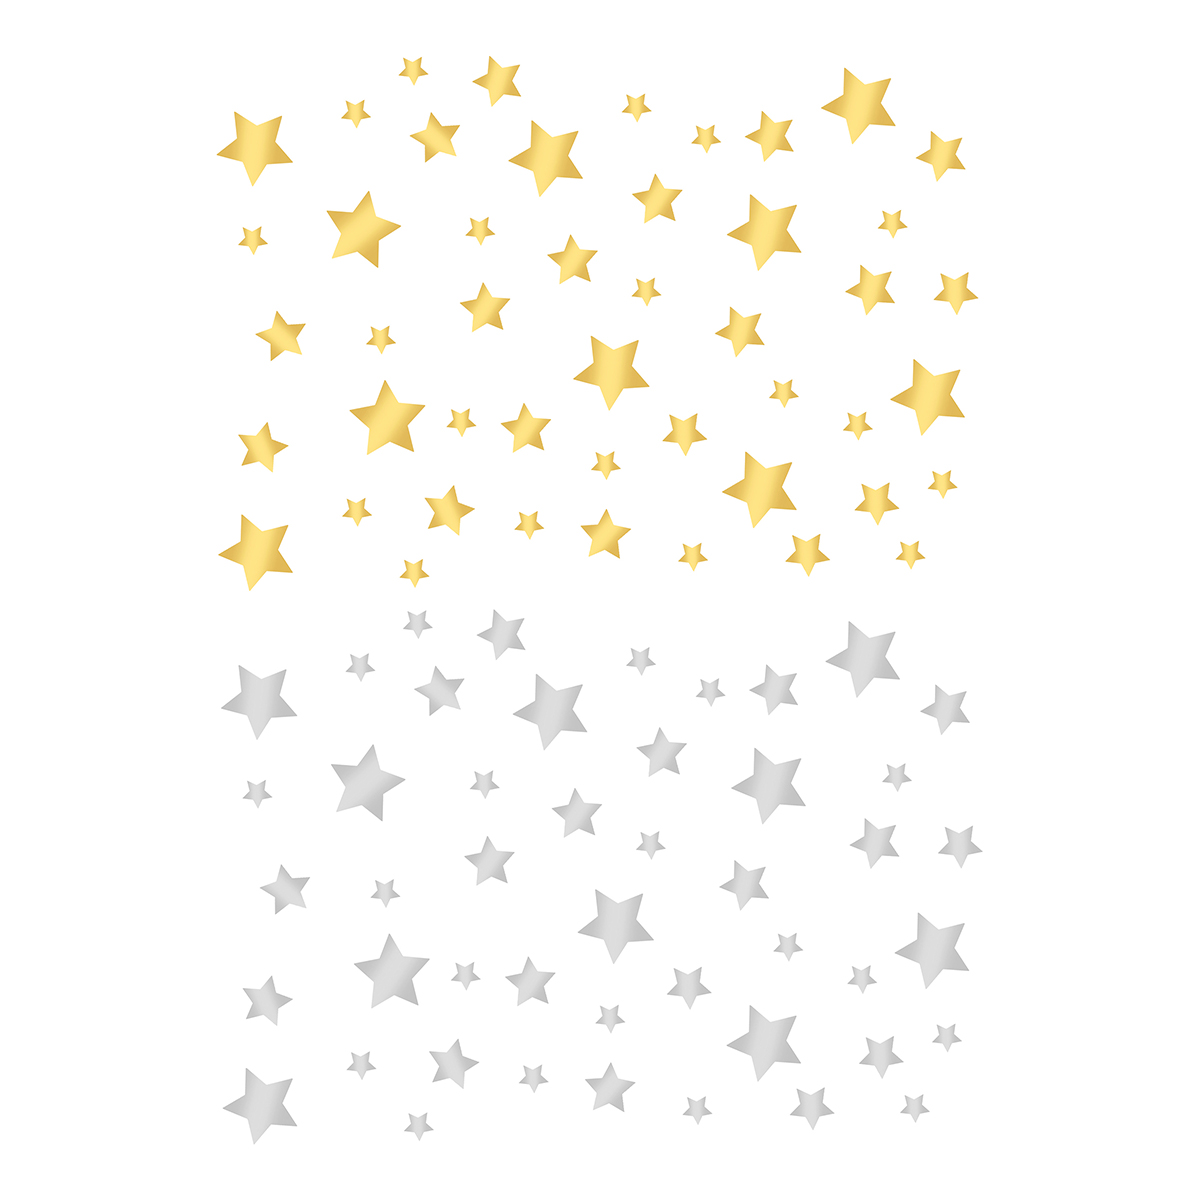 Stars Room Decor Removable Vinyl Stars Wall Sticker Window Sticker Home Nursery Room Kids Shop Art Decor